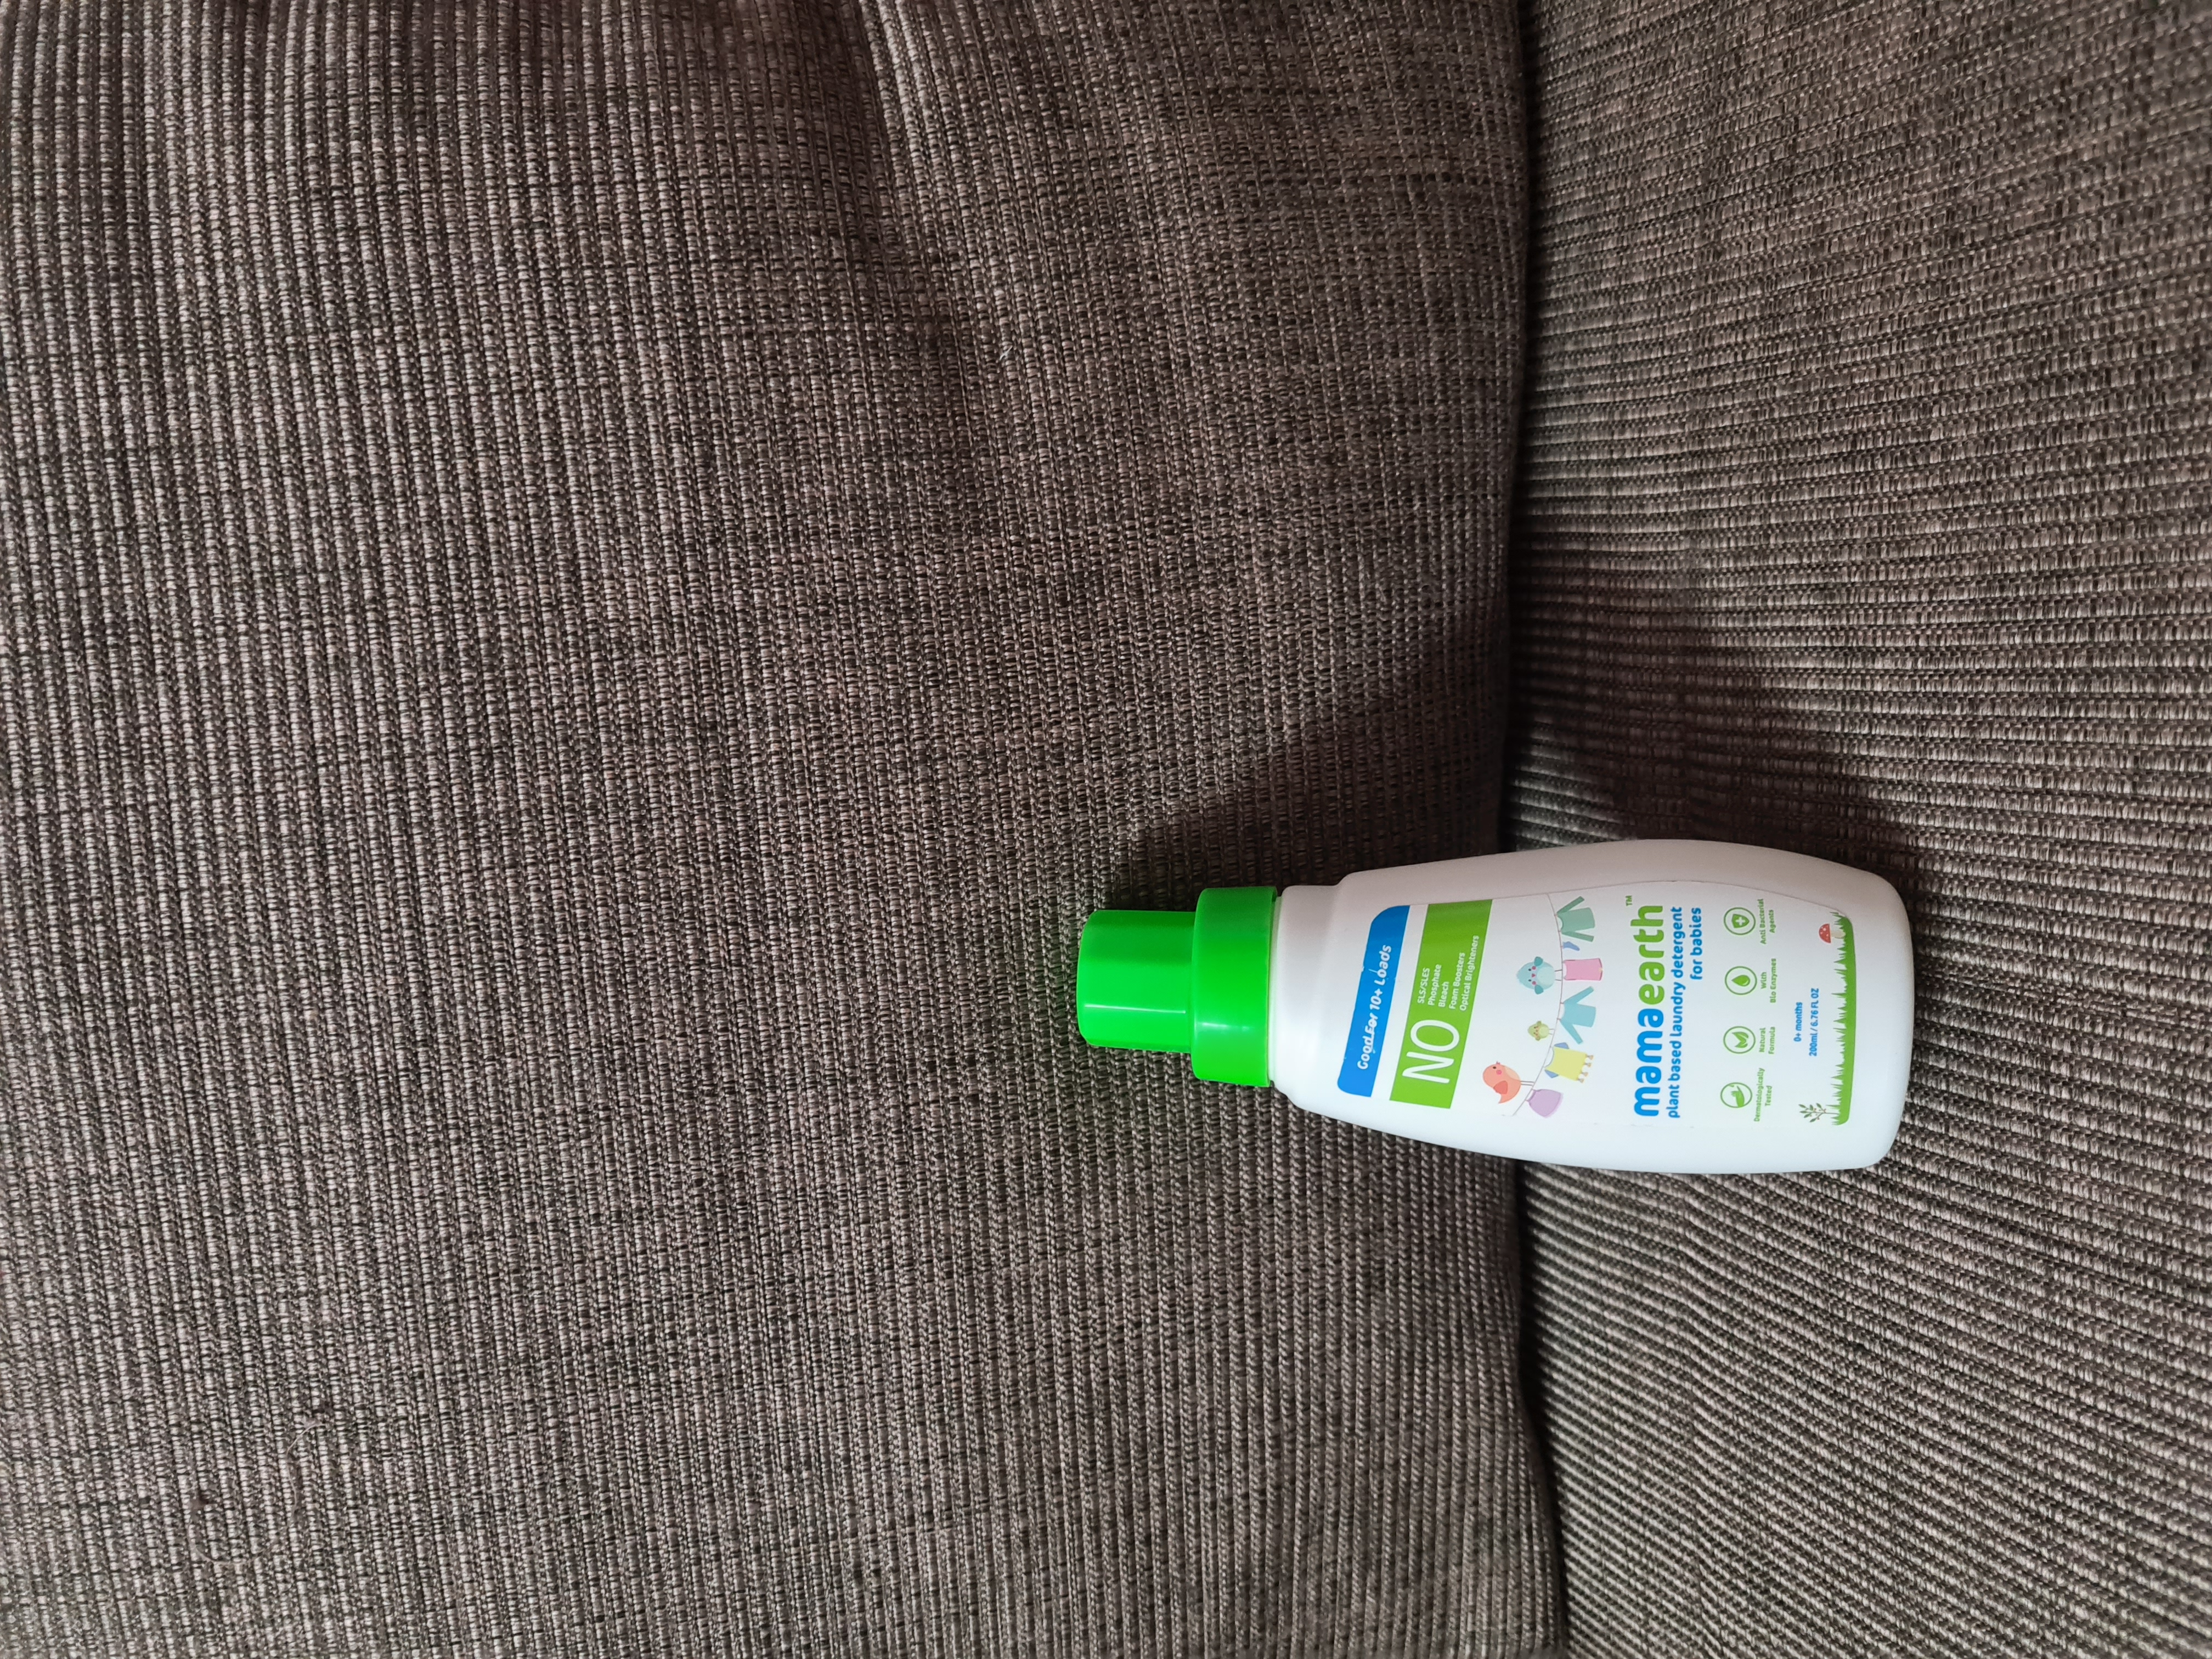 Mamaearth Plant Based Laundry Liquid Detergent For Babies-its good for baby skin-By gunjanjain